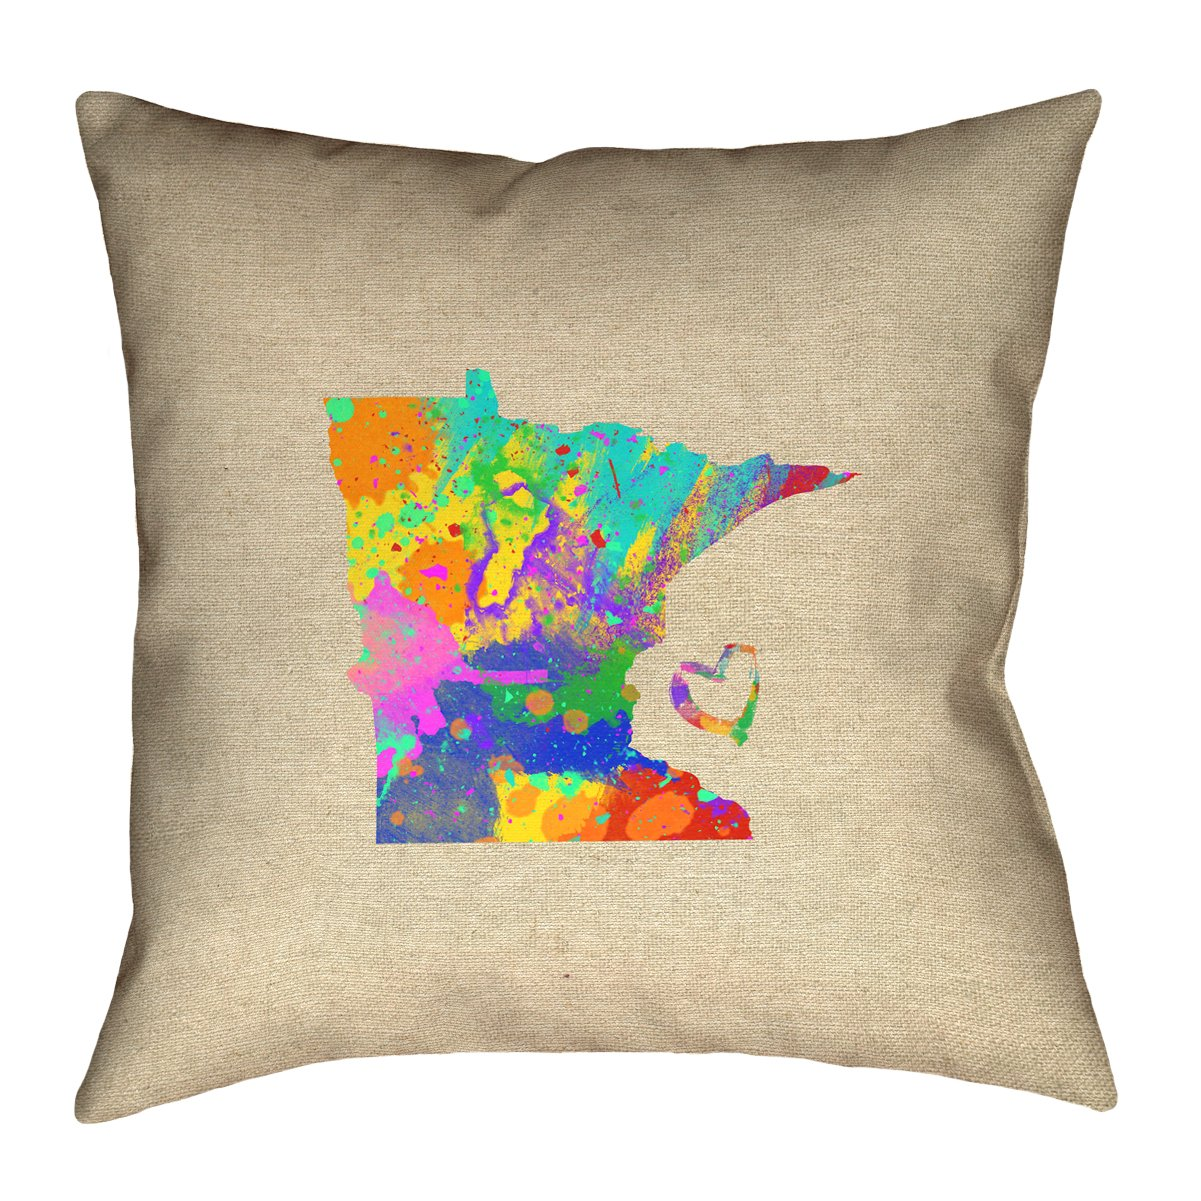 ArtVerse Katelyn Smith 16 x 16 Spun Polyester Double Sided Print with Concealed Zipper /& Insert Minnesota Love Watercolor Pillow